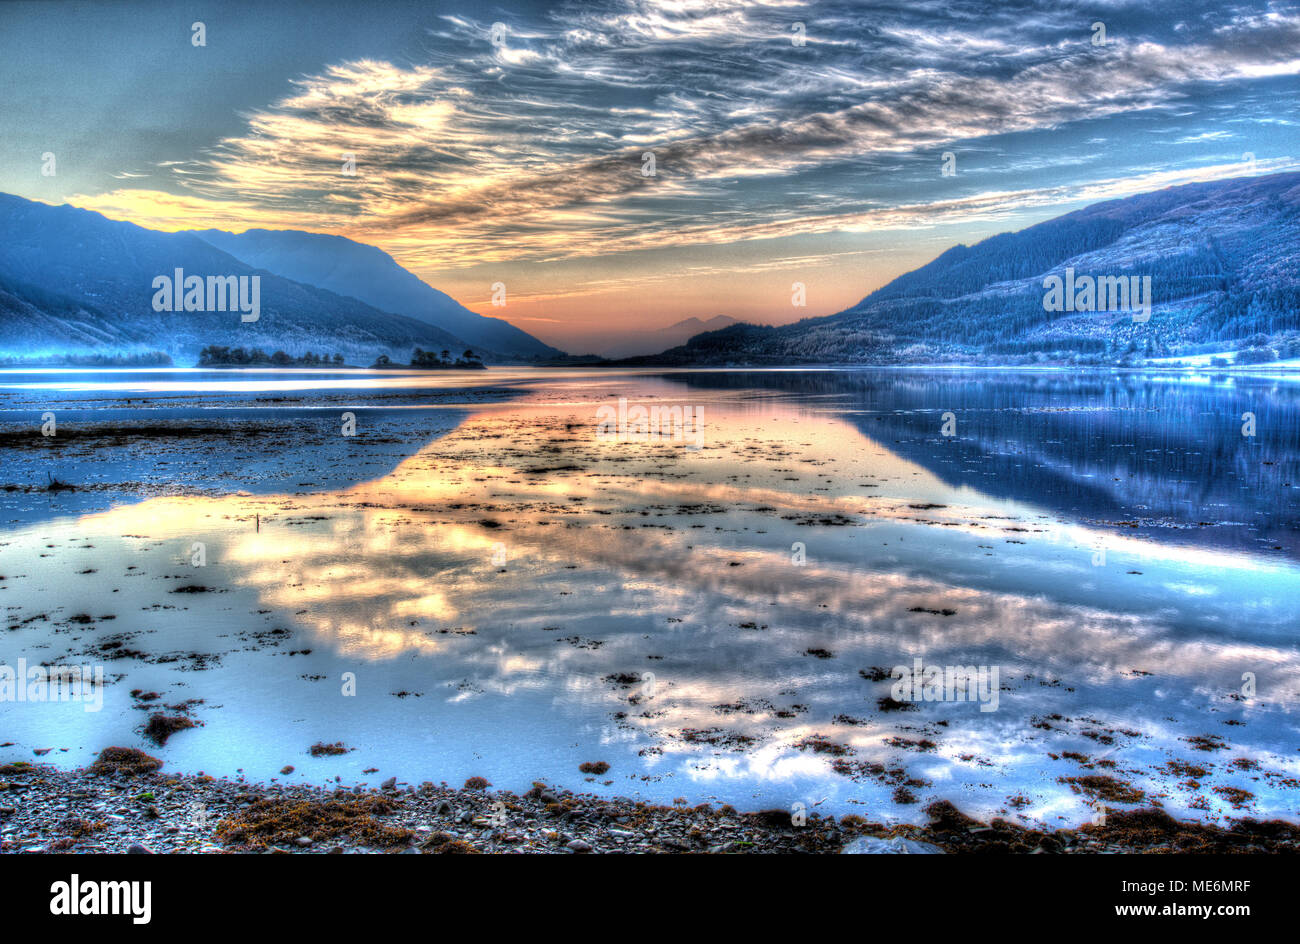 Area of Gen Coe, Scotland. Artistic dusk view of Loch Leven with North Ballachulish in the distant background. - Stock Image